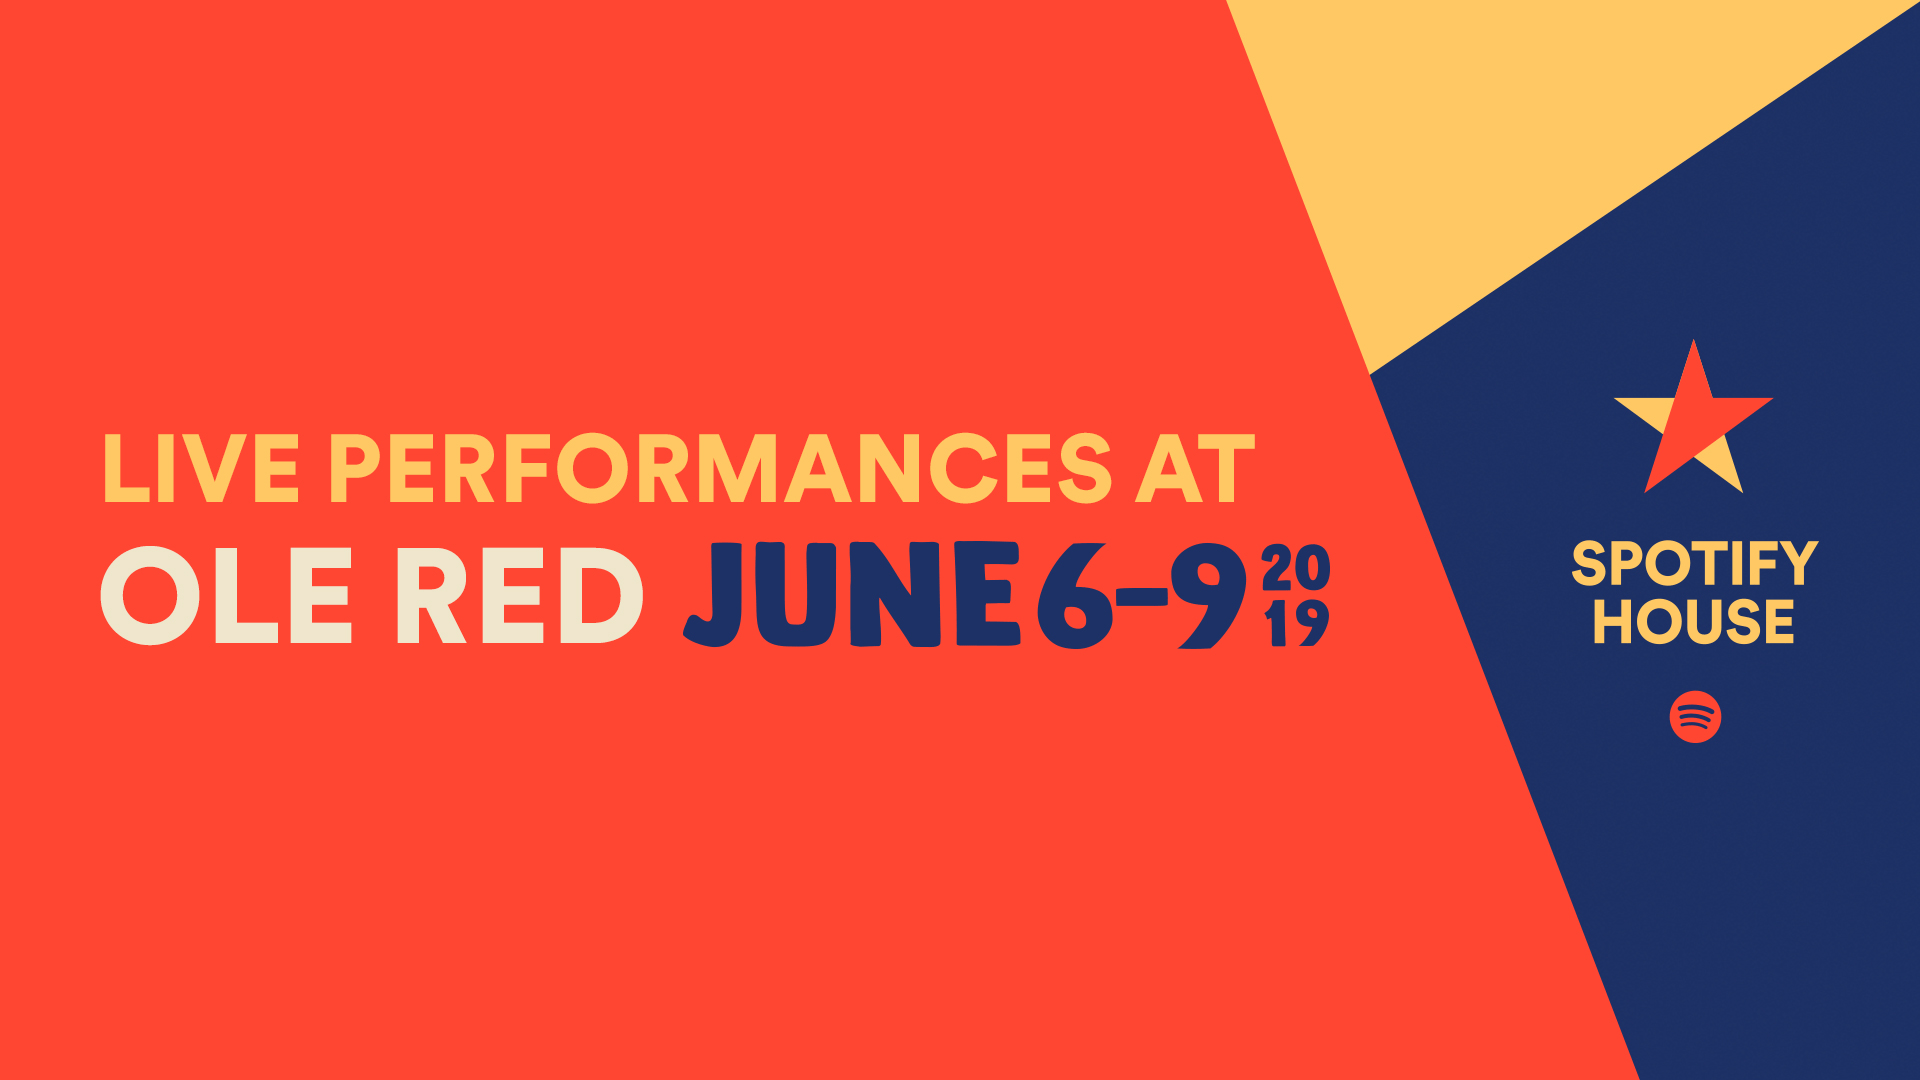 Spotify Presents Live Performances at Ole Red